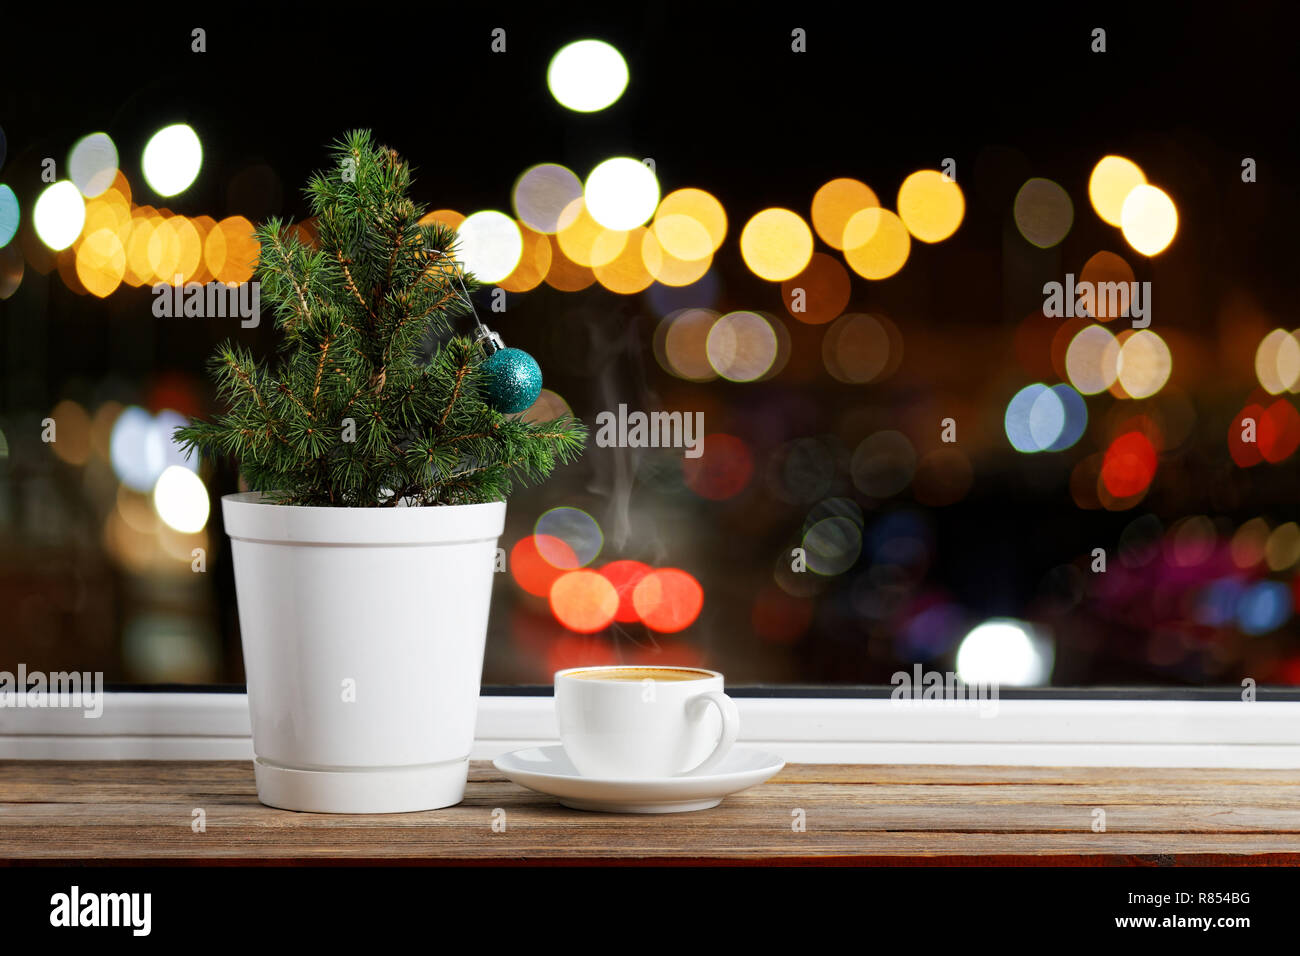 Small Christmas Tree In A Flowerpot Decorated With One Christmas Ball On A Wooden Window Sill Nearby Is A Cup Of Coffee Outside The Window Are Color Stock Photo Alamy